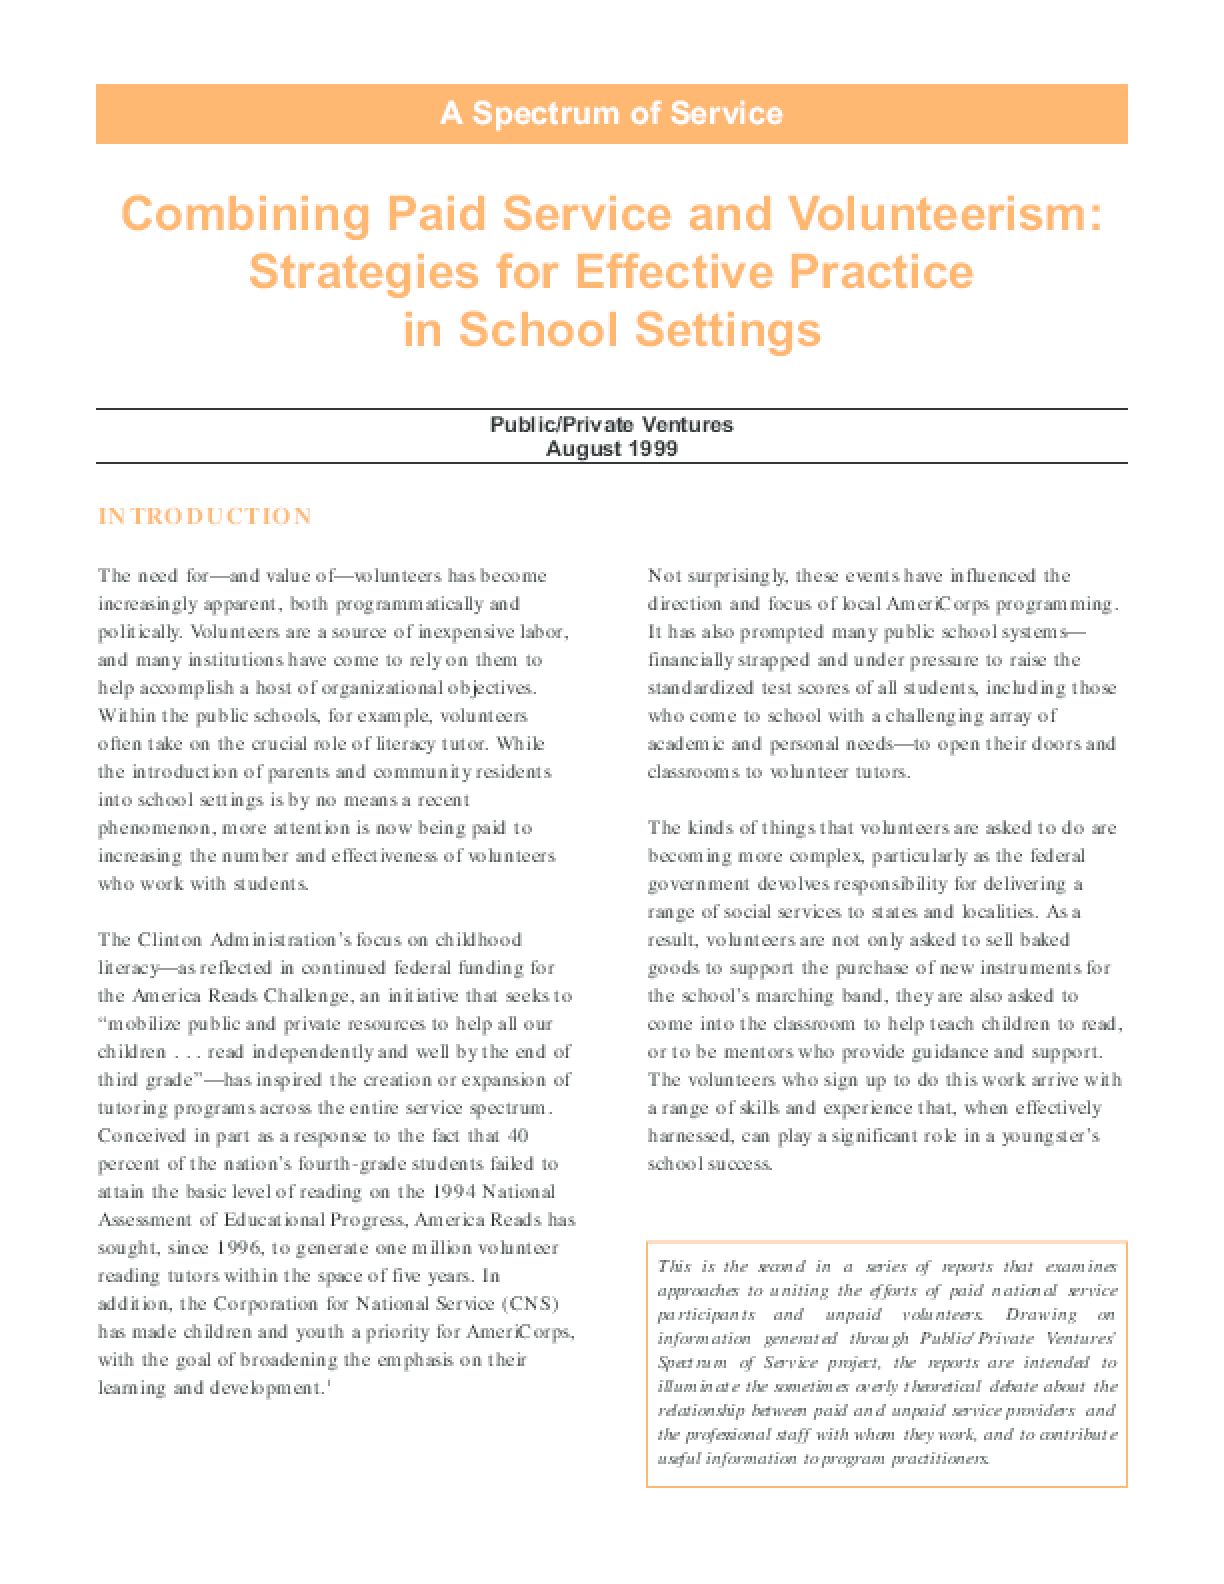 A Spectrum of Service: Combining Paid Service and Volunteerism: Strategies for Effective Practice in School Settings